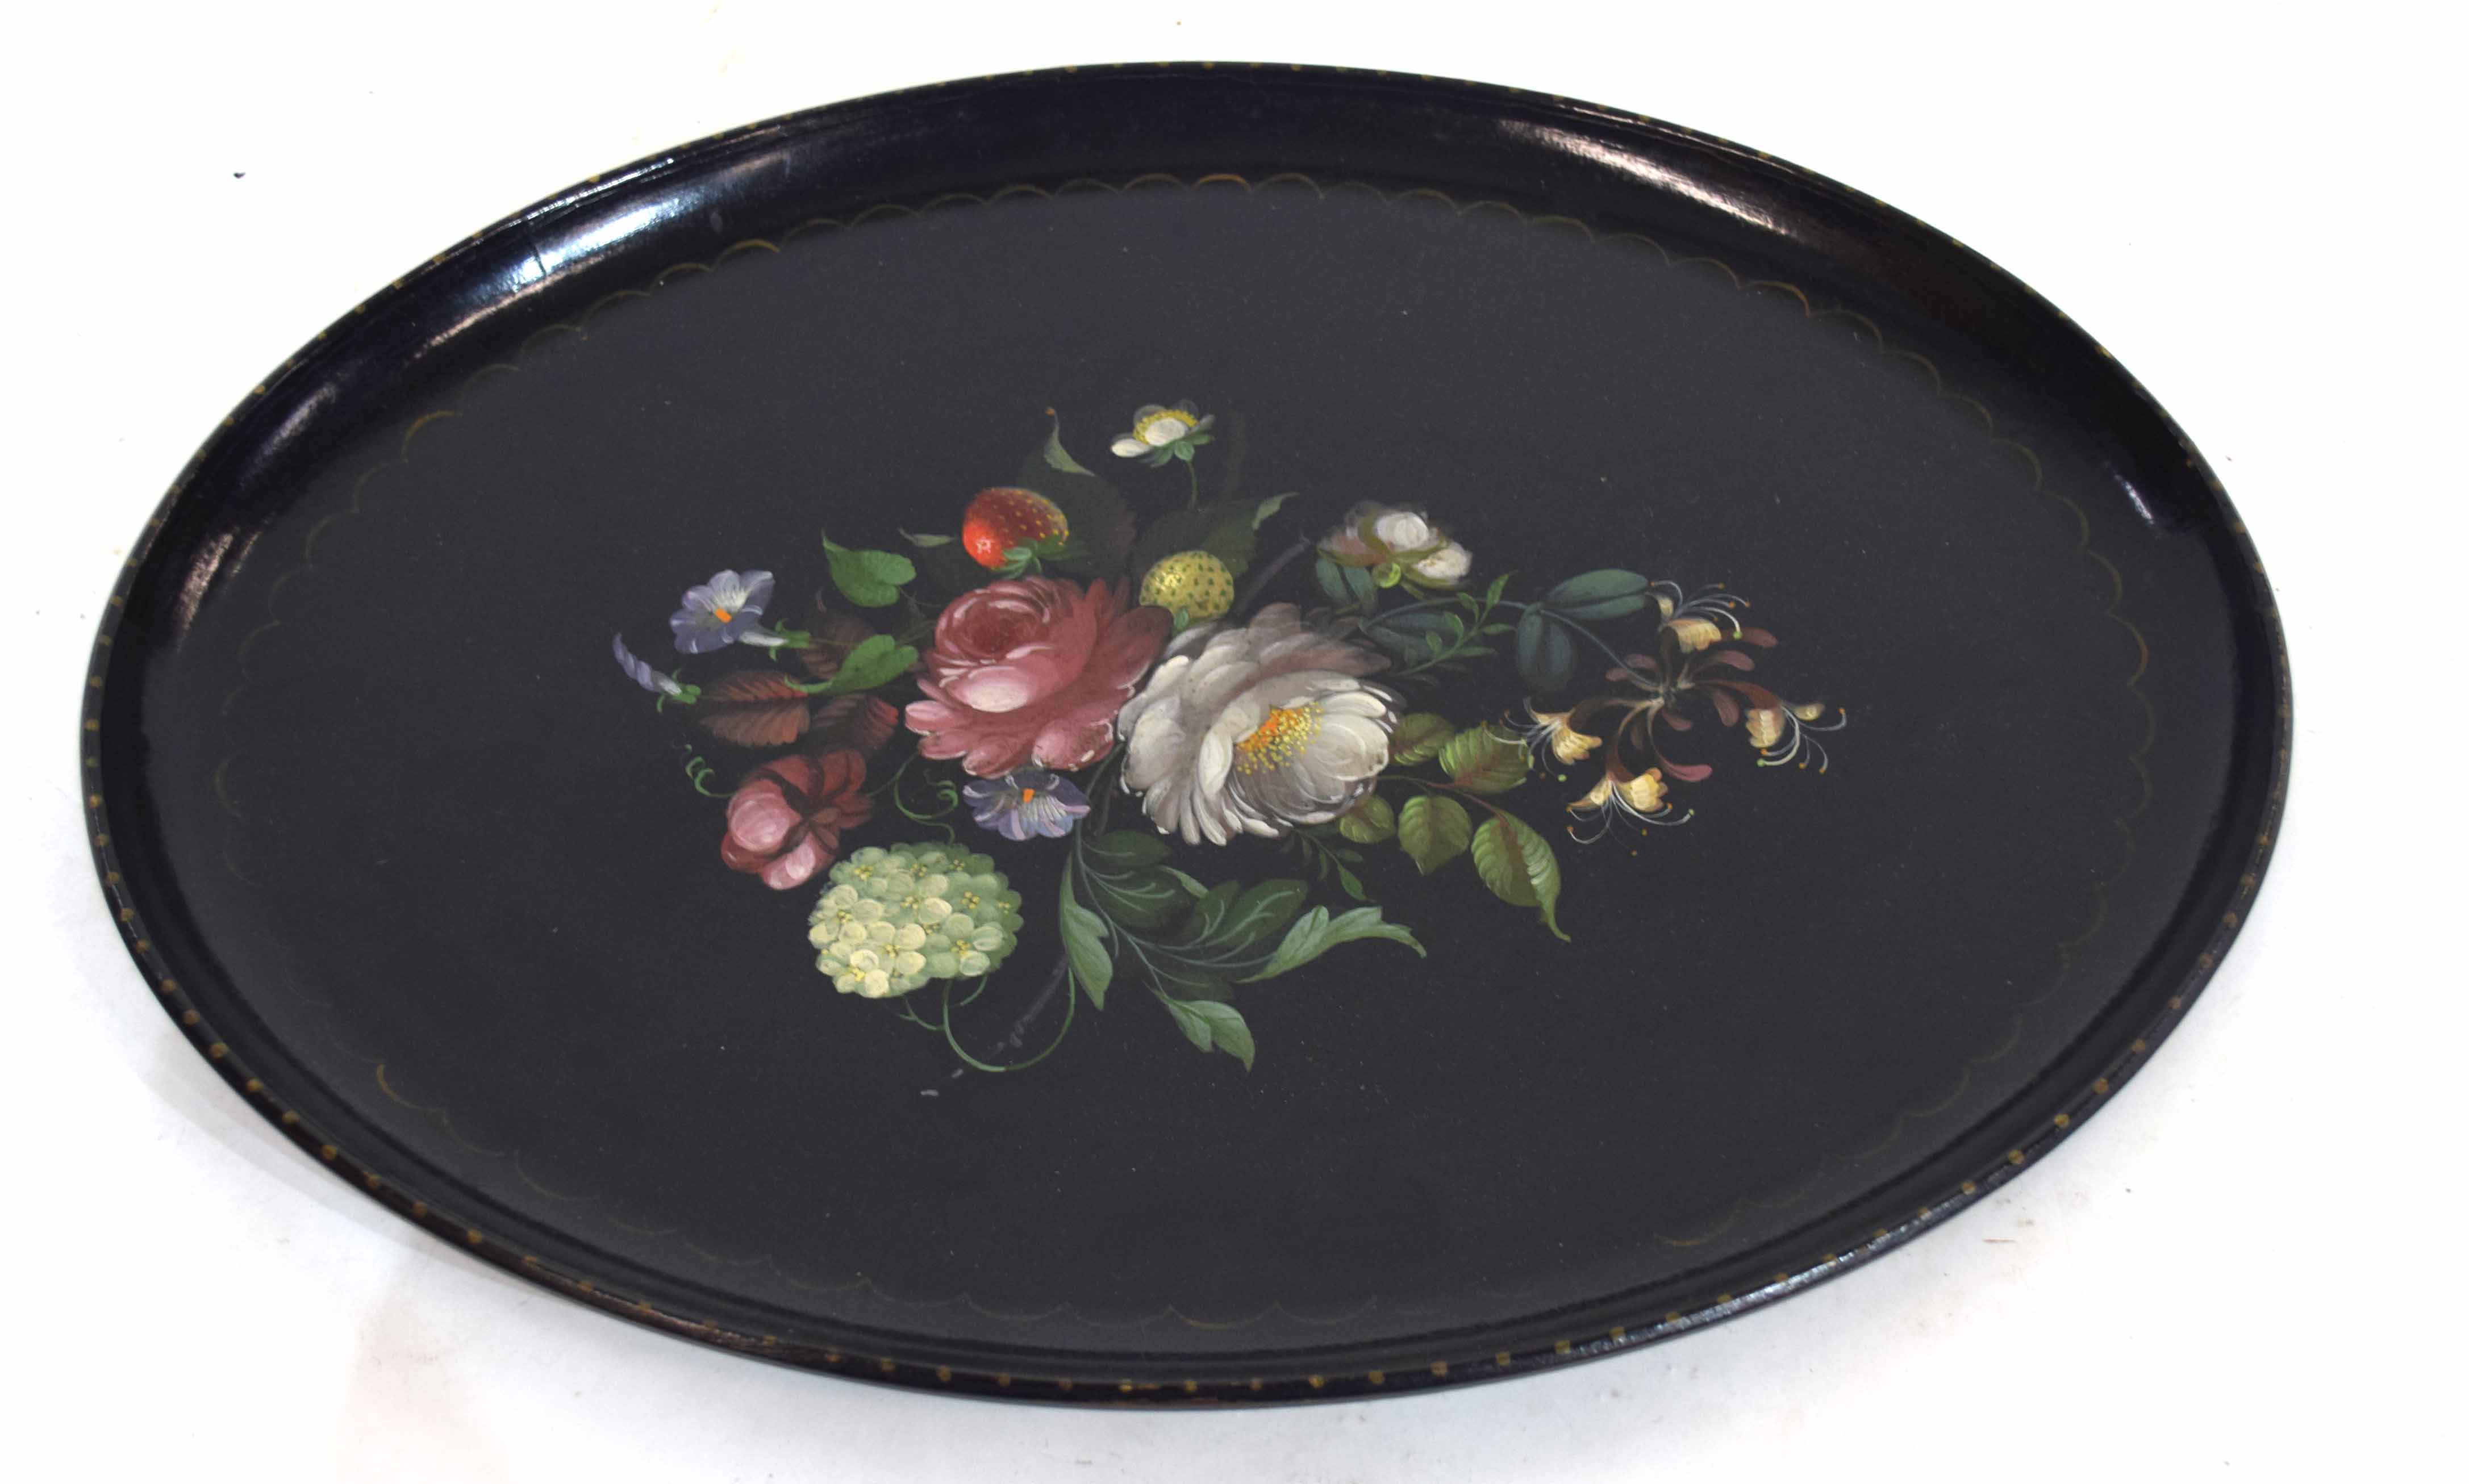 Papier mache type tray, the centre decorated with flowers and fruit within a loop border, 52cm